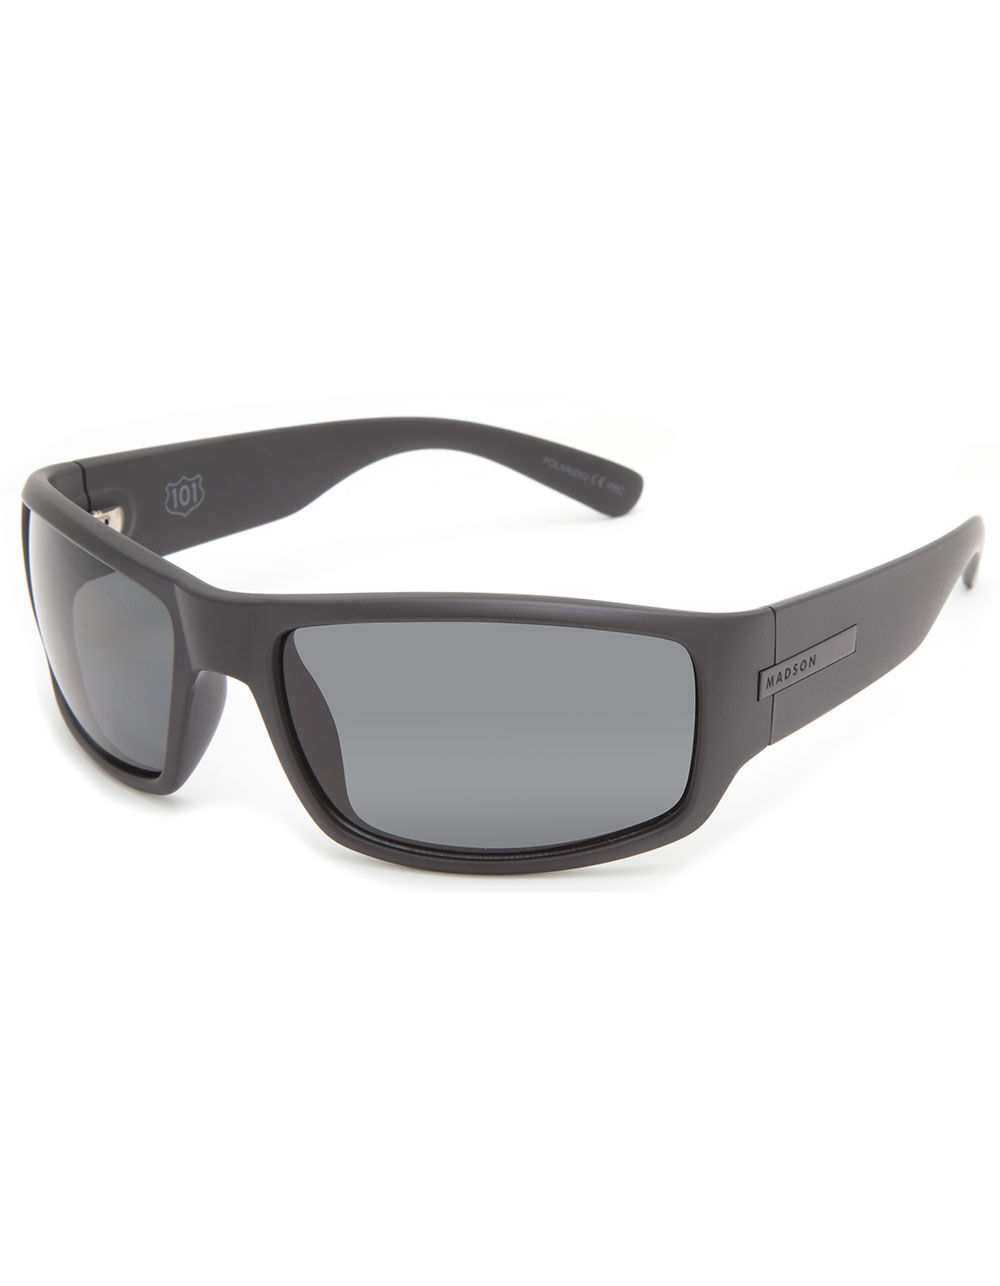 MADSON OF AMERICA 101 Polarized Sunglasses